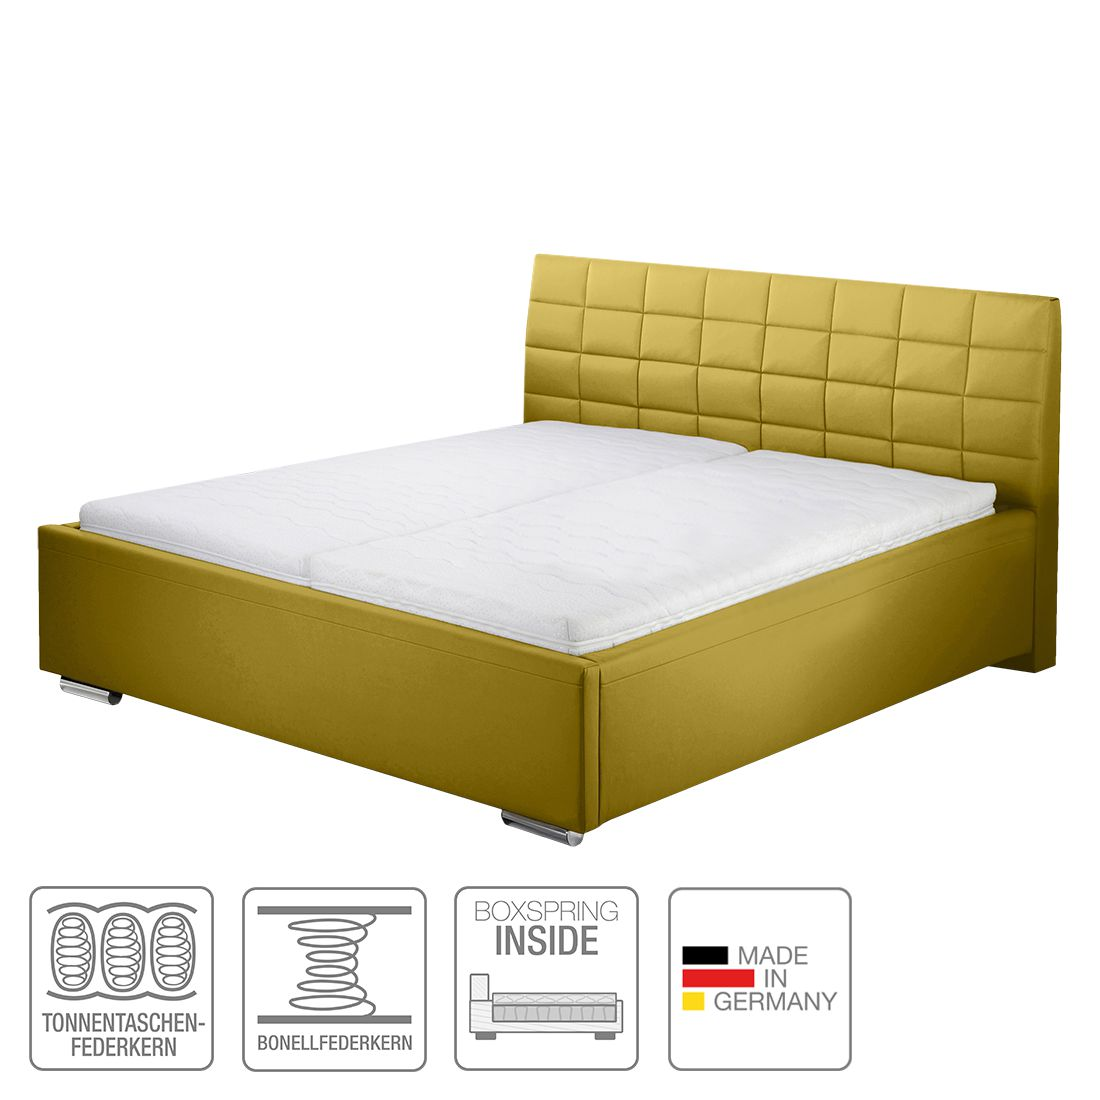 boxspring inside bett victoria kunstleder 140 x 200cm h2 bis 80 kg. Black Bedroom Furniture Sets. Home Design Ideas